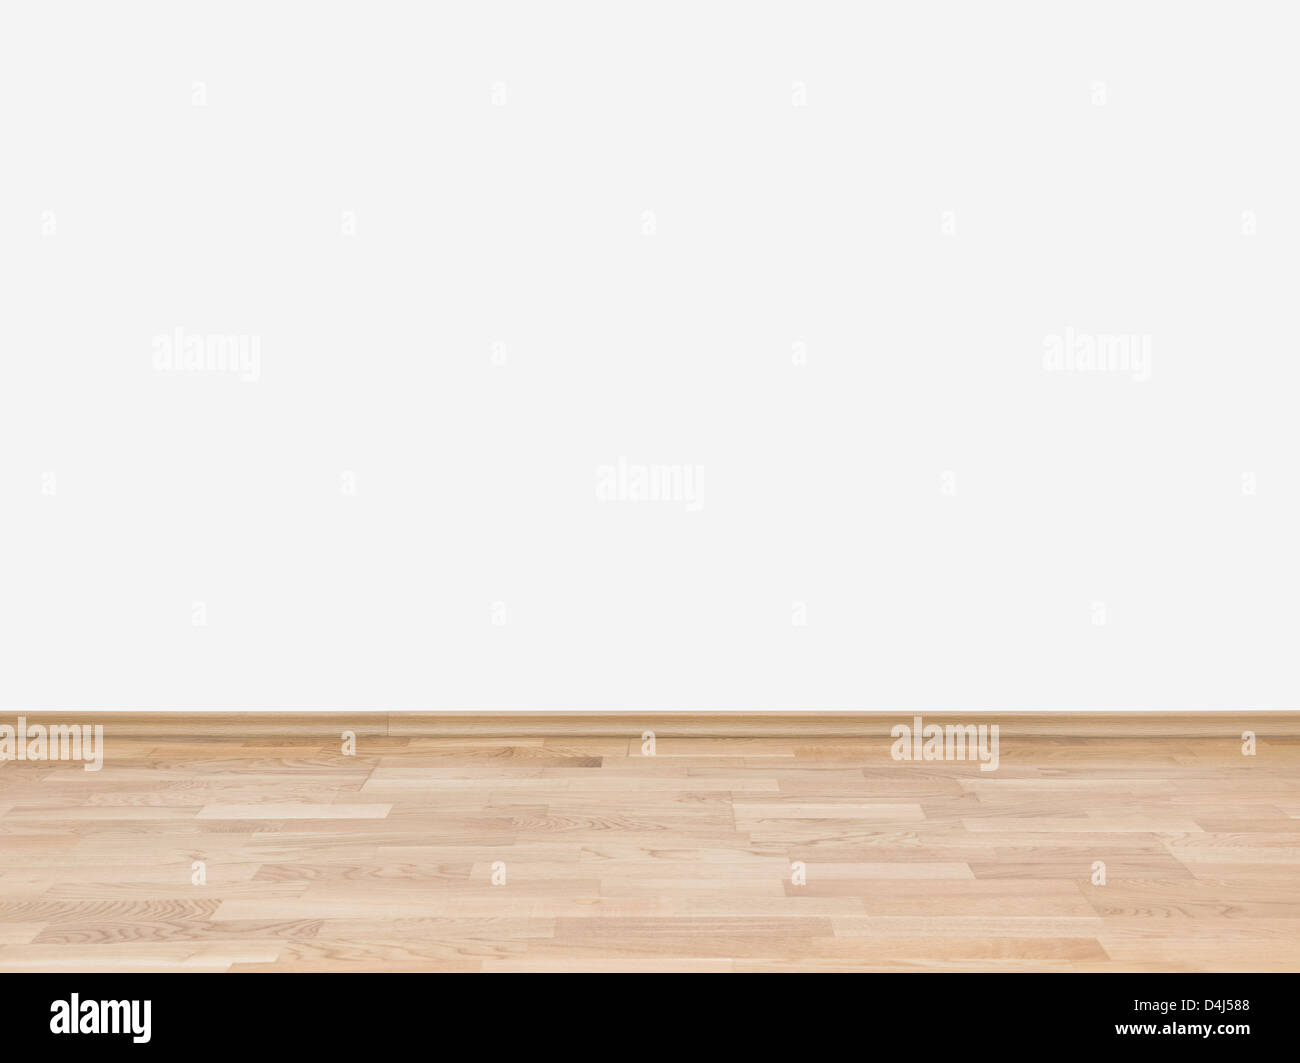 Background With An Empty White Wall With A Hardwood Wooden